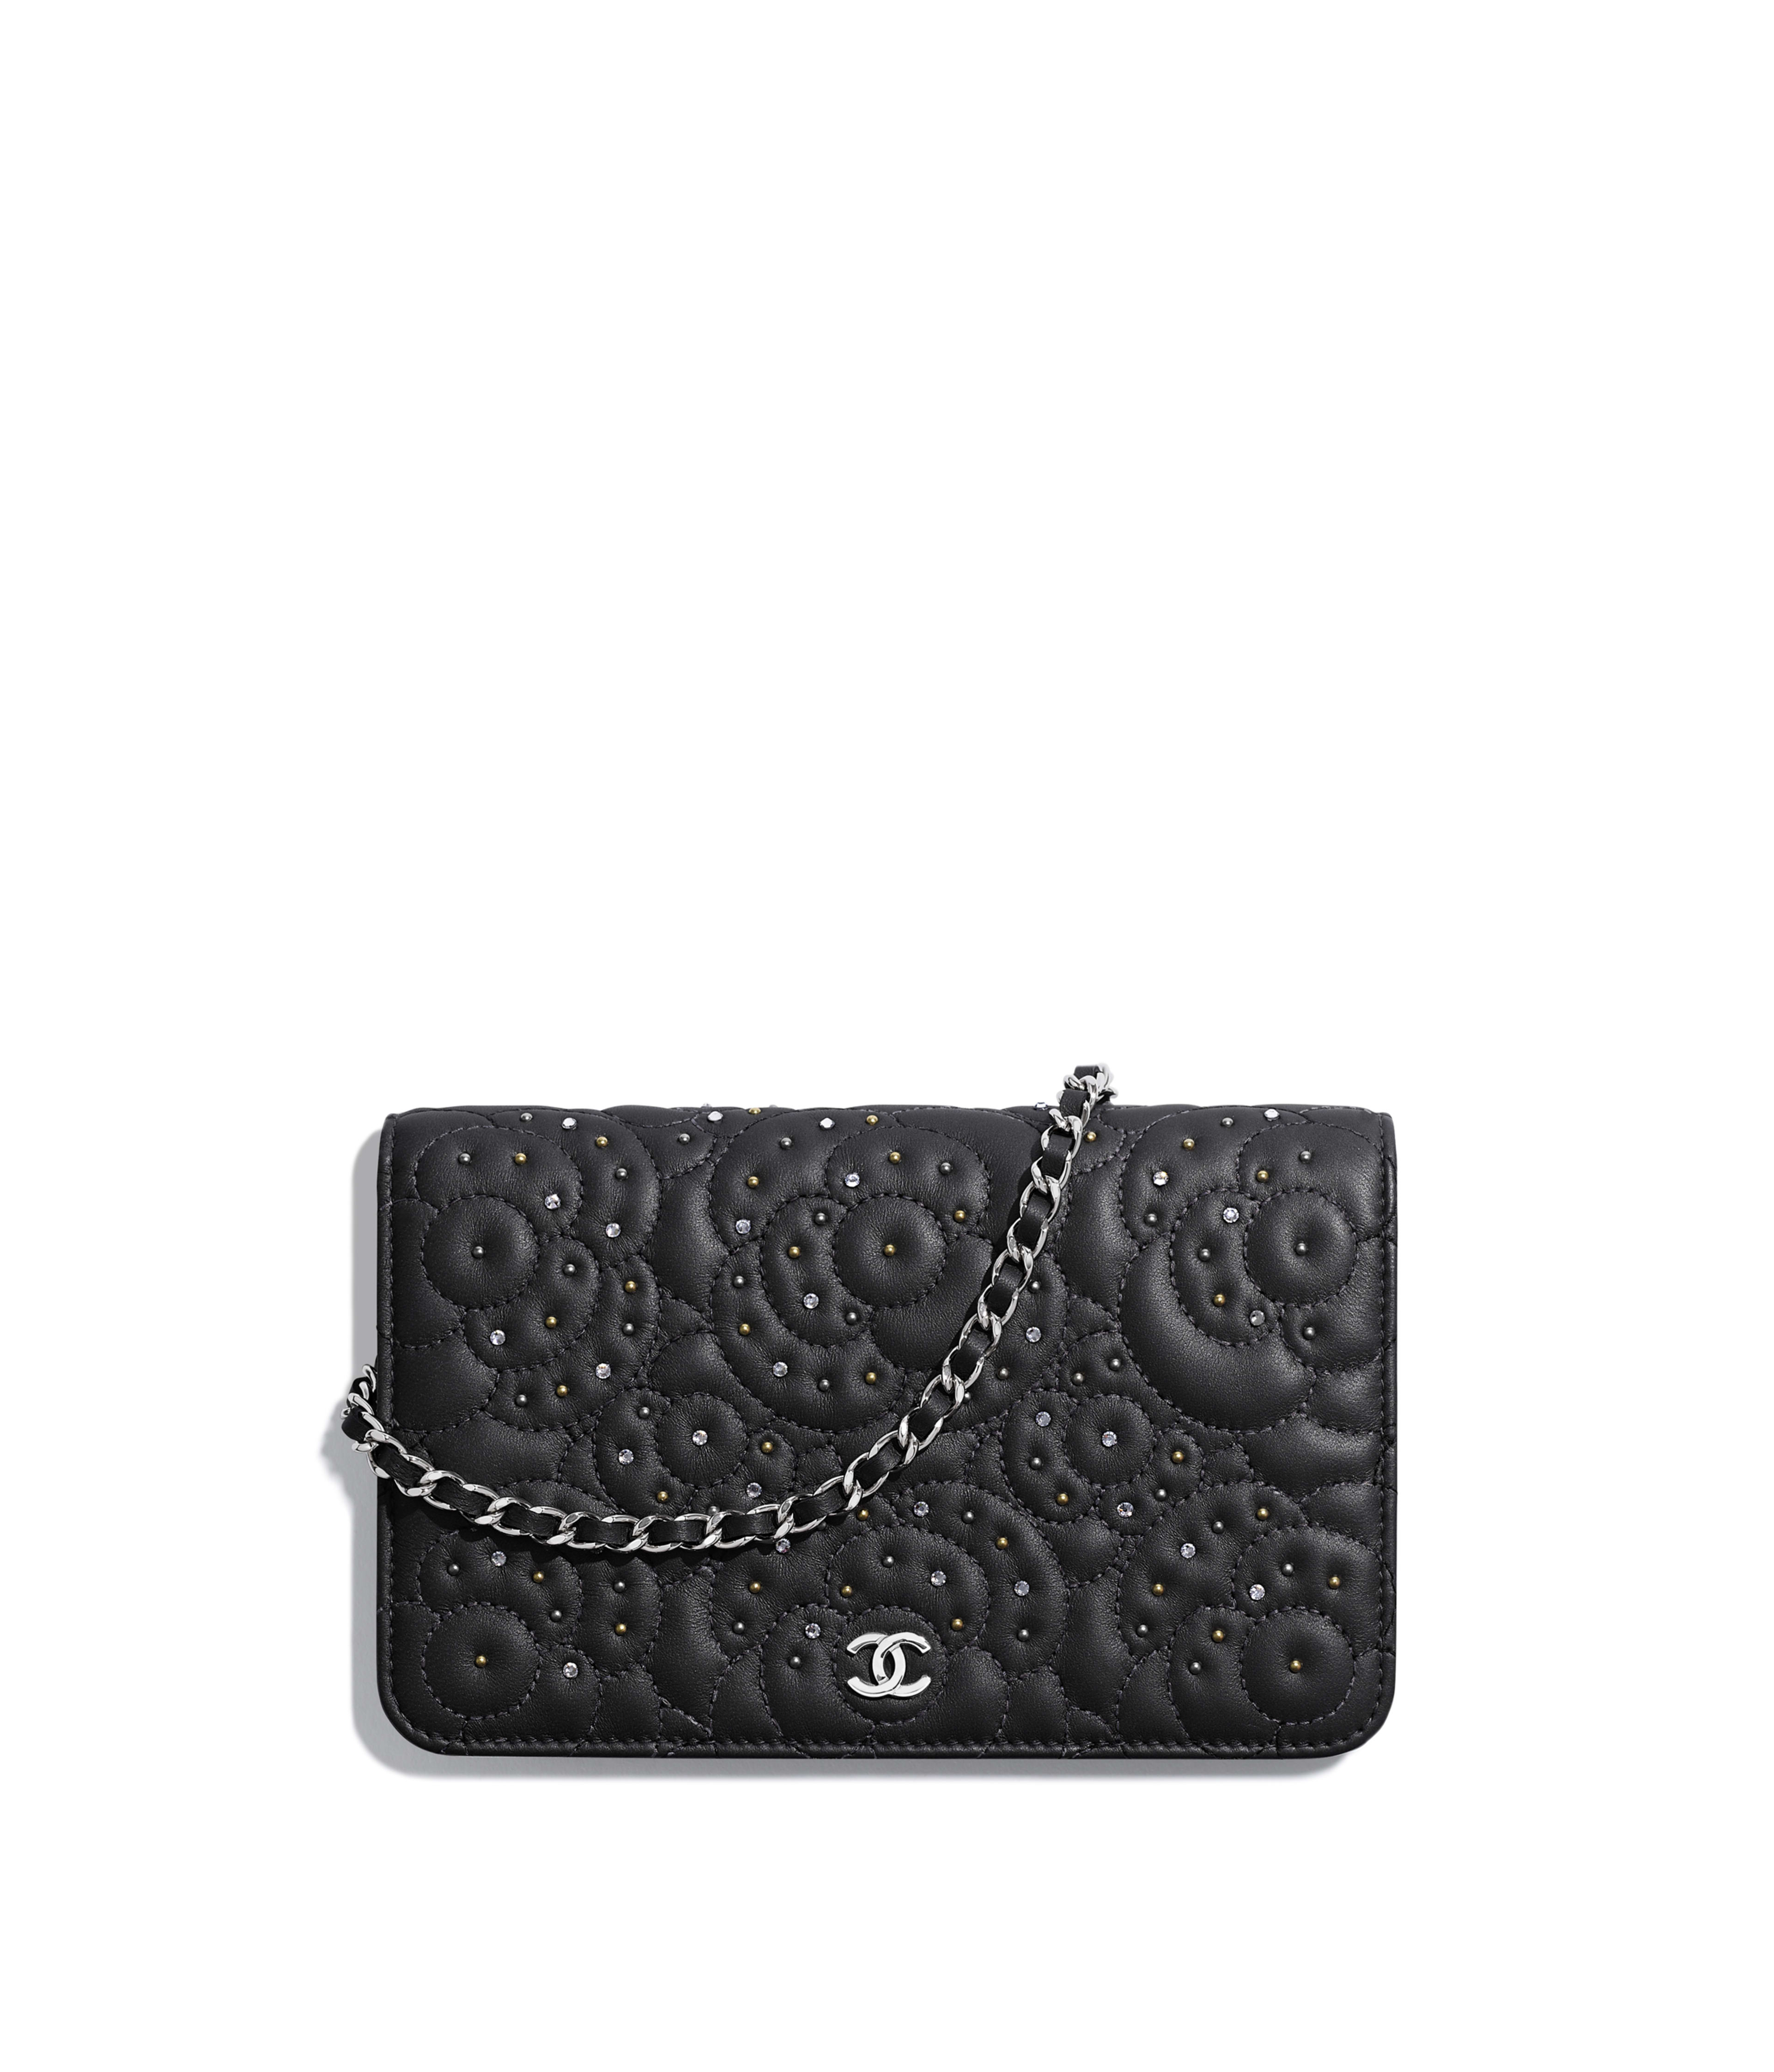 Wallets on Chain - Small leather goods  57fffc4f1c